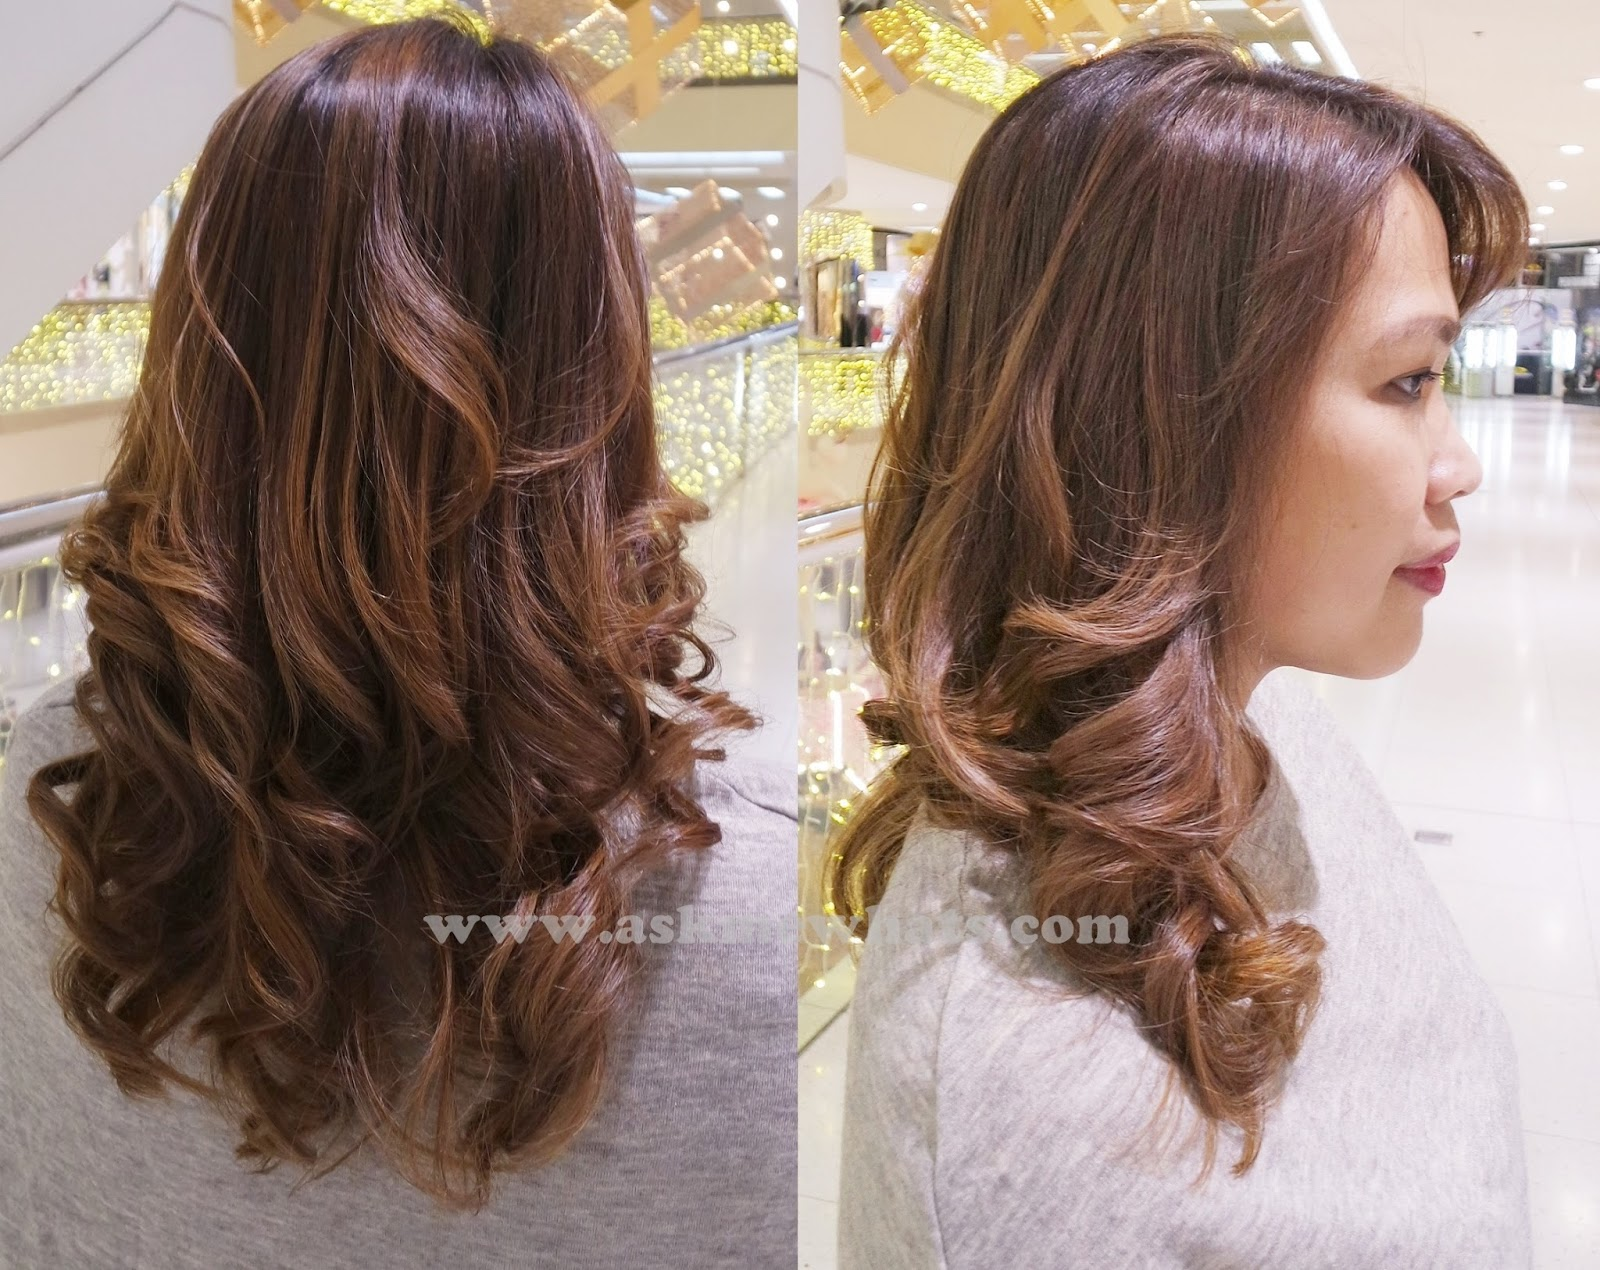 Ash Brown Hair Dye Philippines Askmewhats Top Beauty Blogger Philippines Skincare